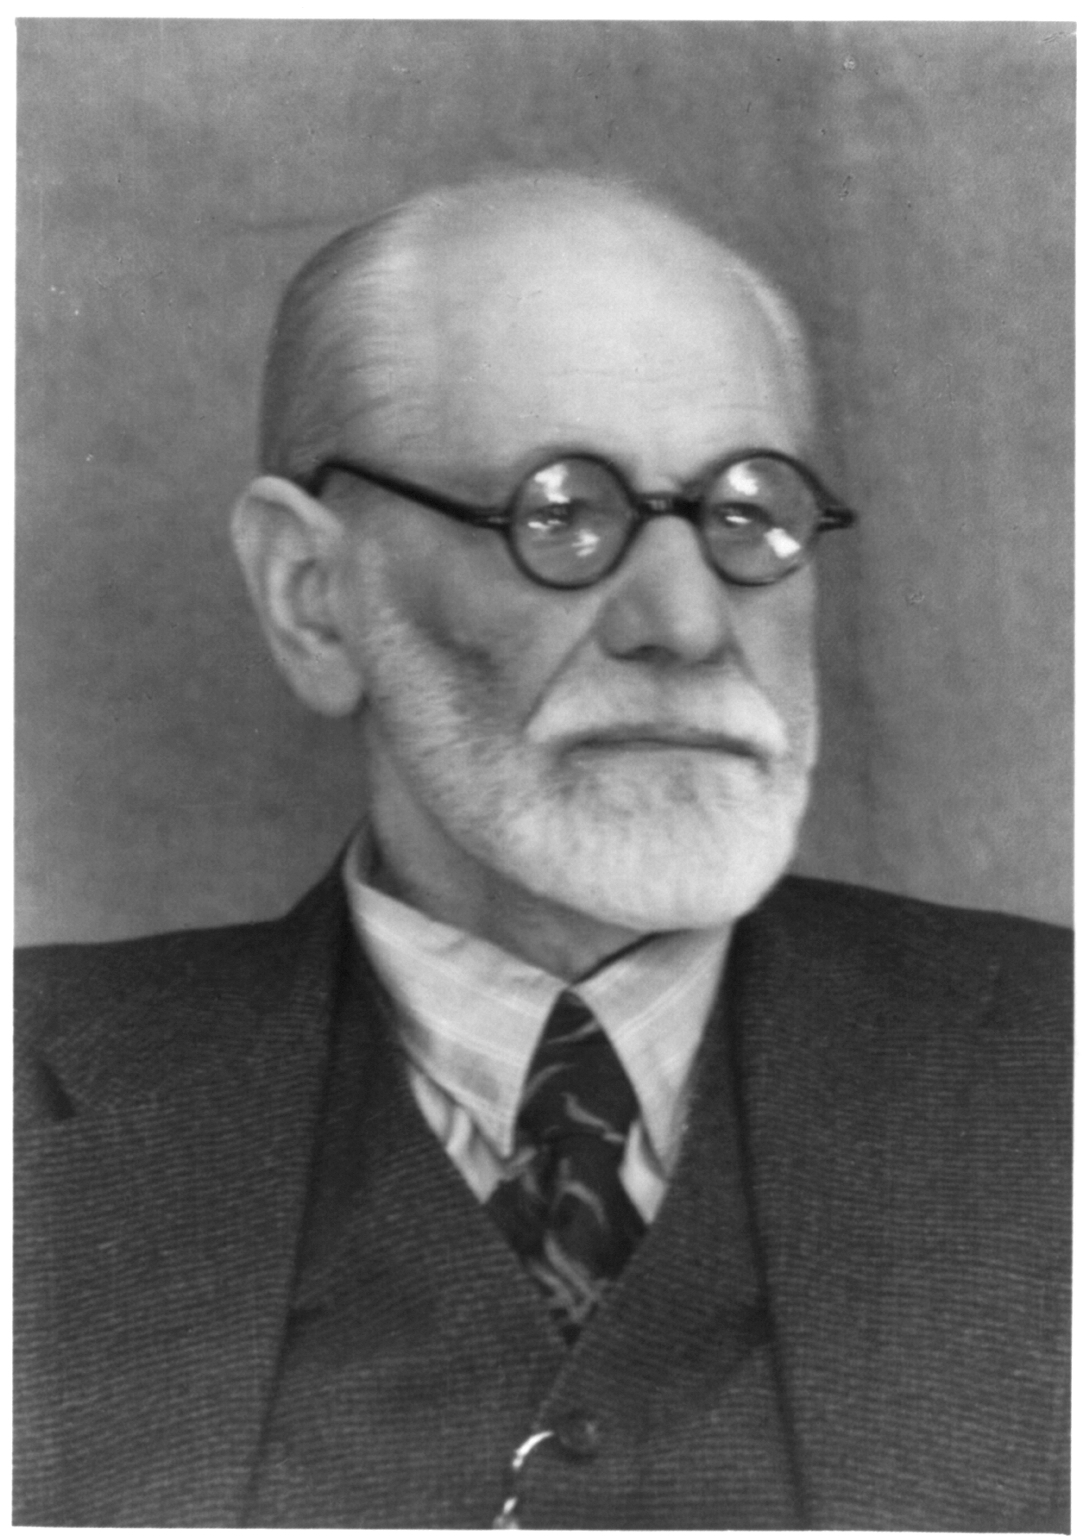 Sigmund Freud Revealed